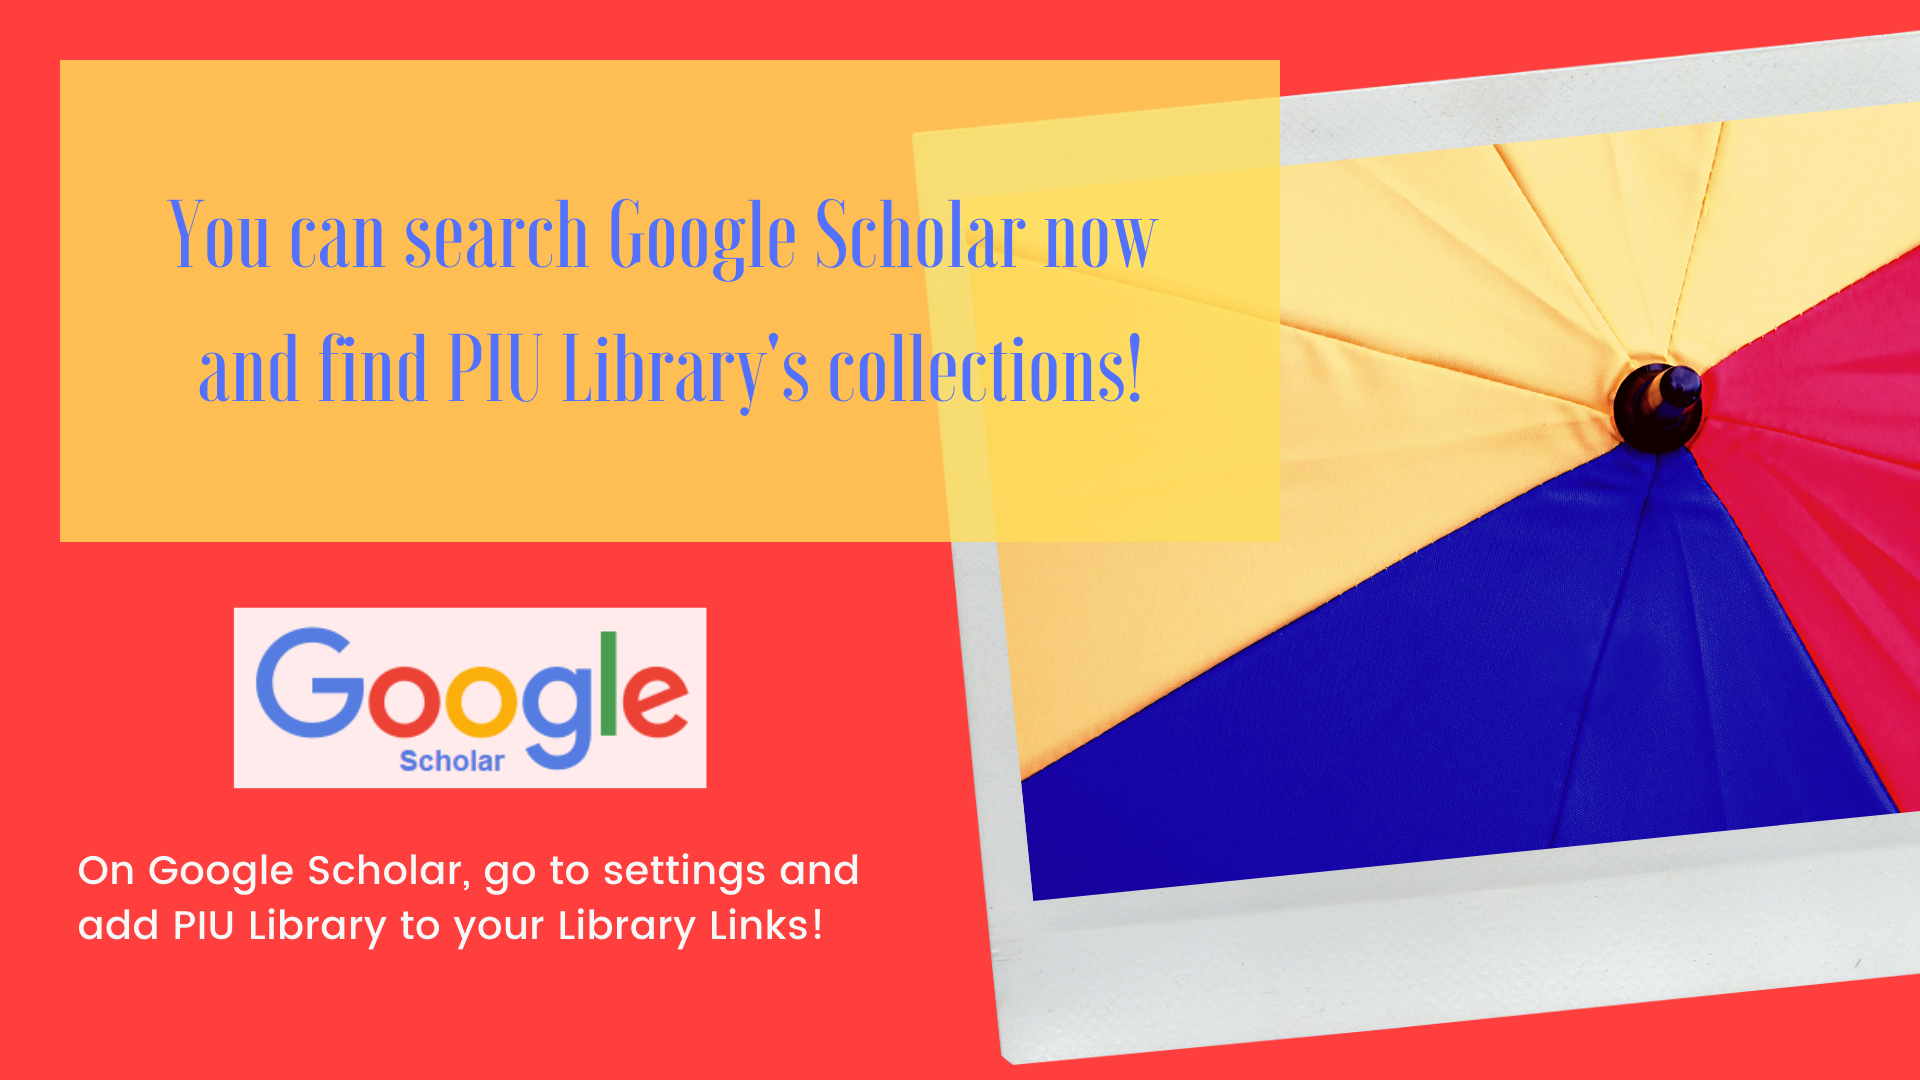 You can search Google Scholar now  and find PIU Library's collections! On Google Scholar, go to settings and add PIU Library to your Library Links!